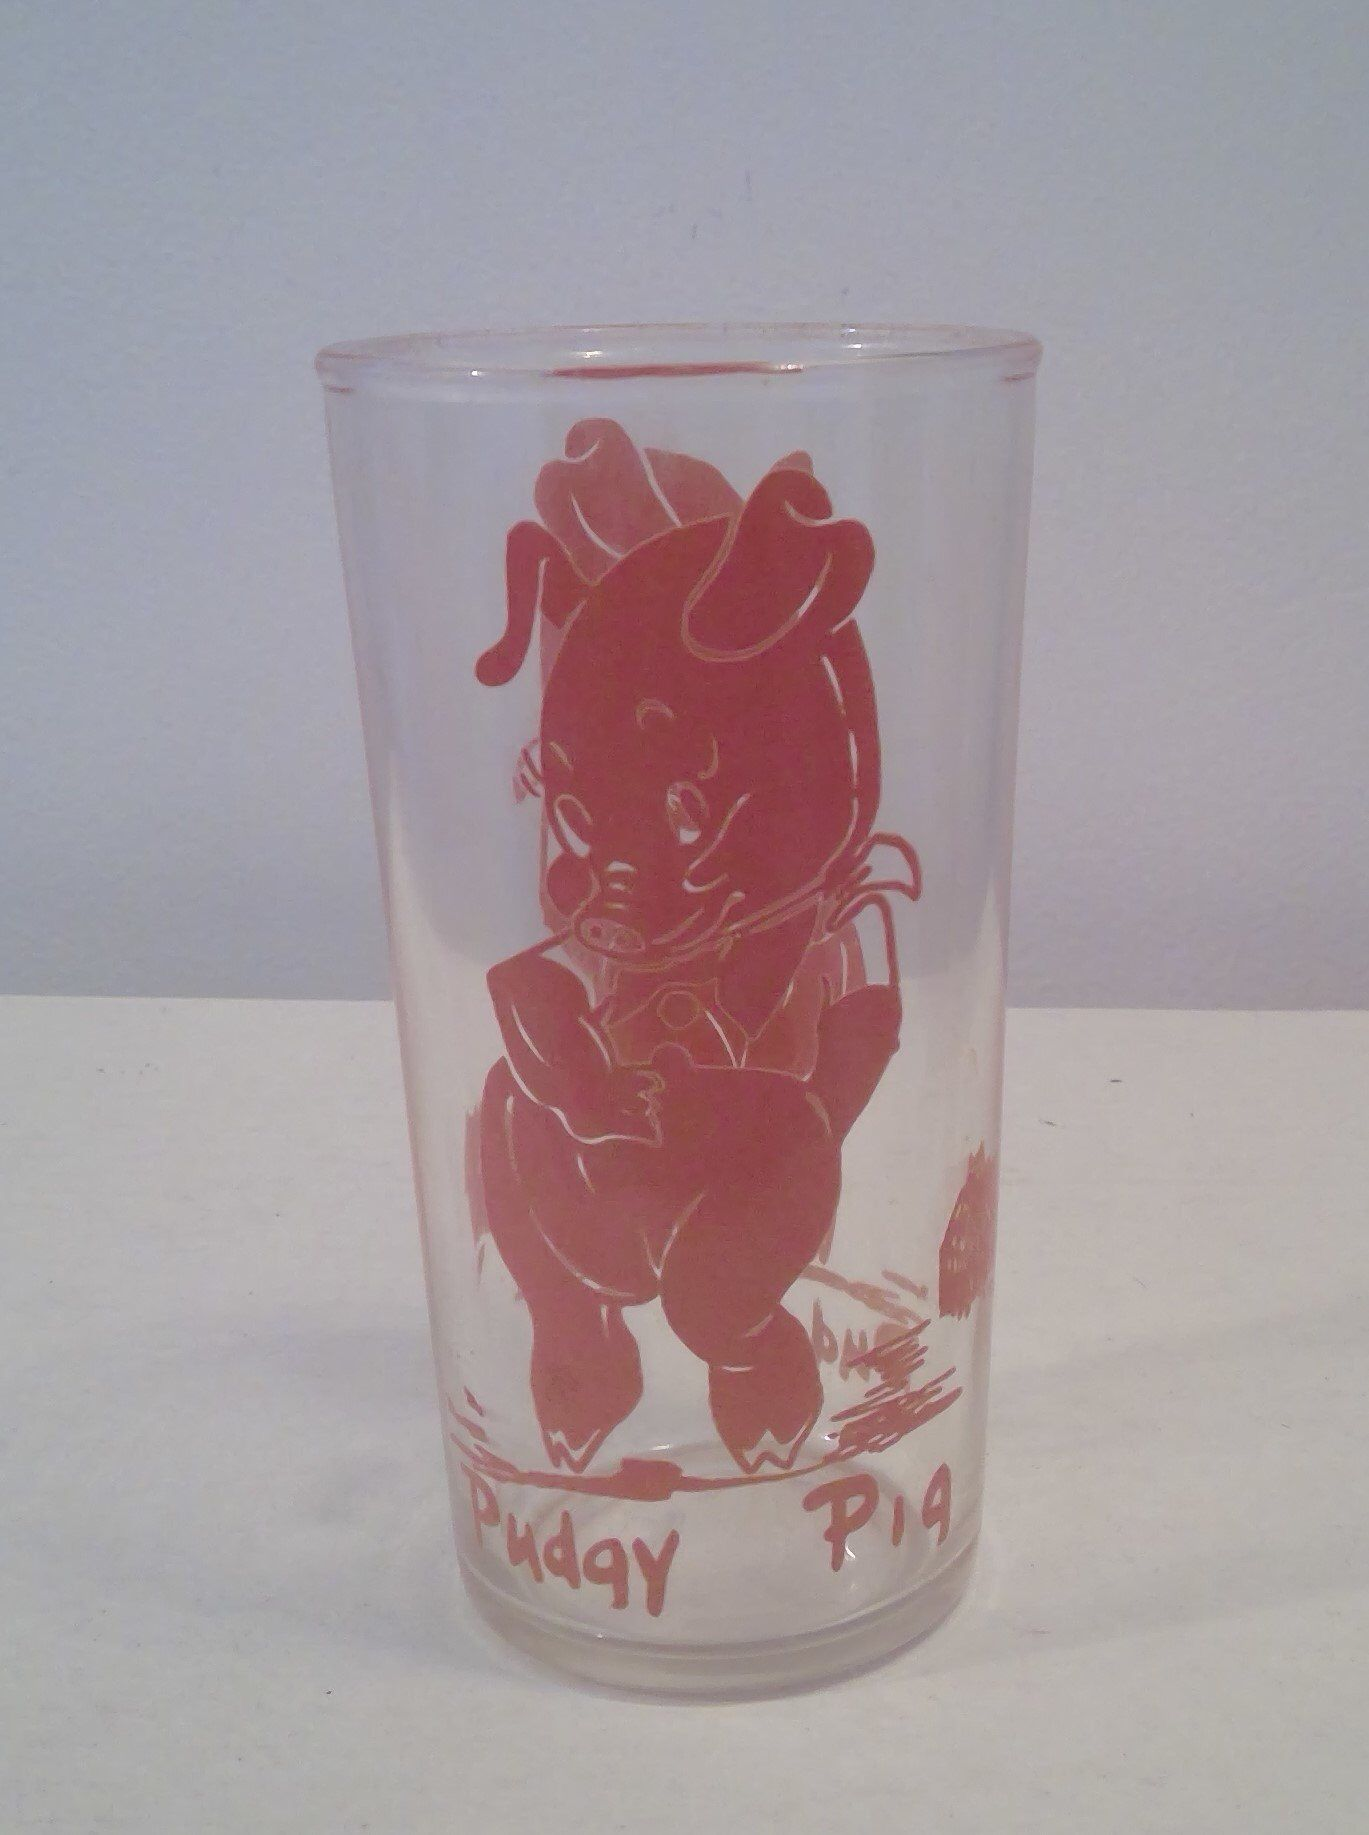 Vintage Pudgy Pig Drinking Glass Pink Pig Cartoon Character Etsy Pig Lover Gifts Pig Cartoon Vintage Cartoon